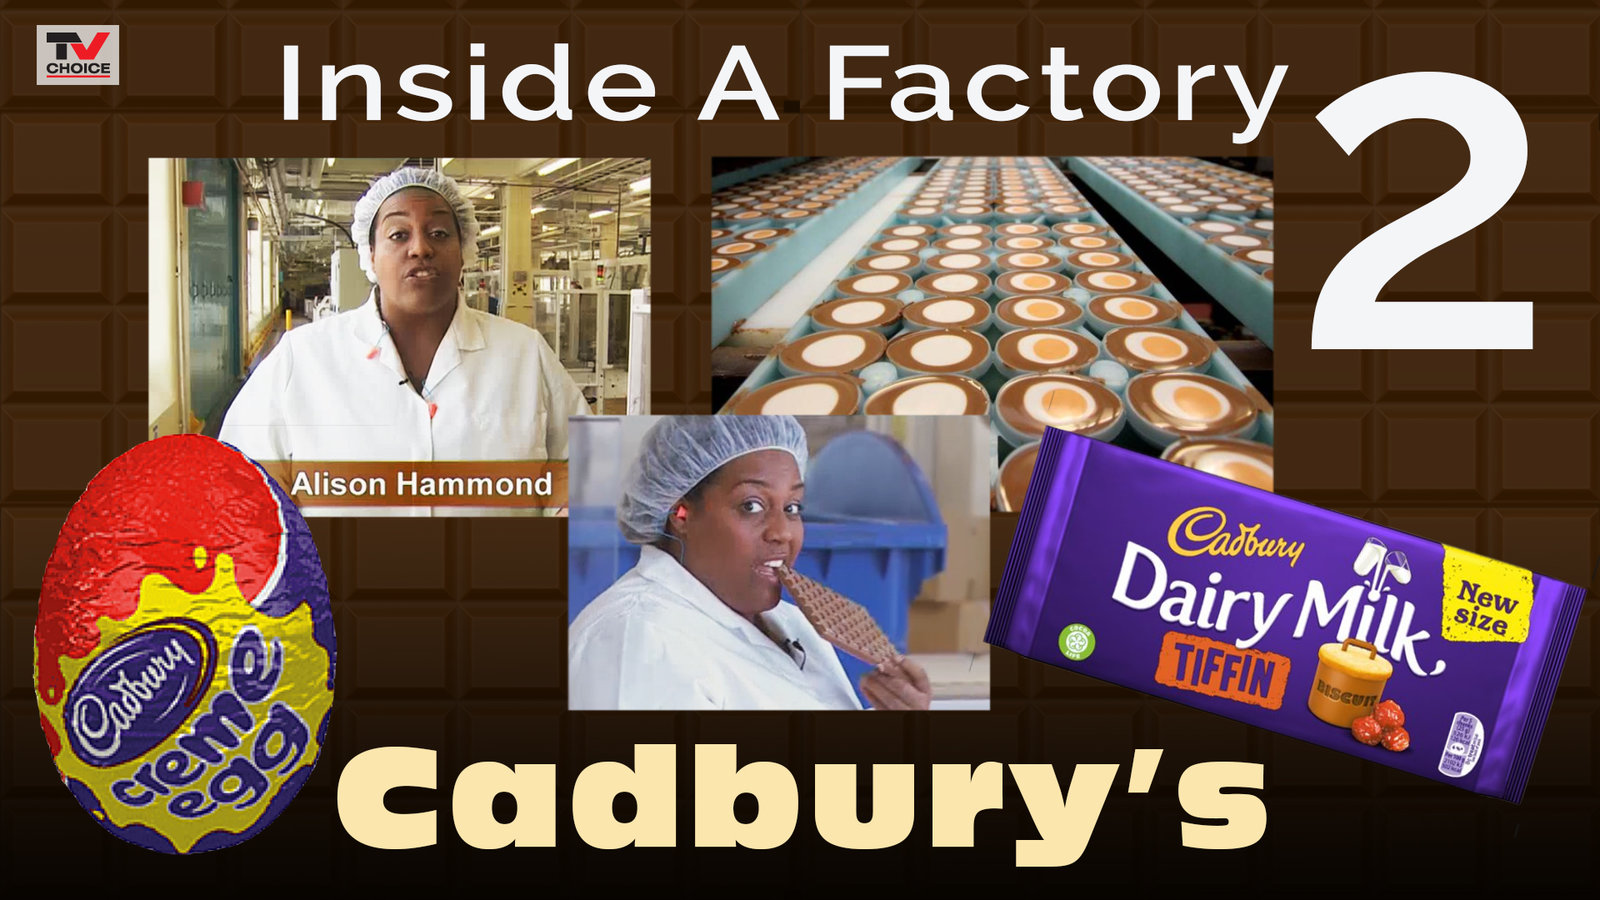 Inside A Factory 2: Cadbury's